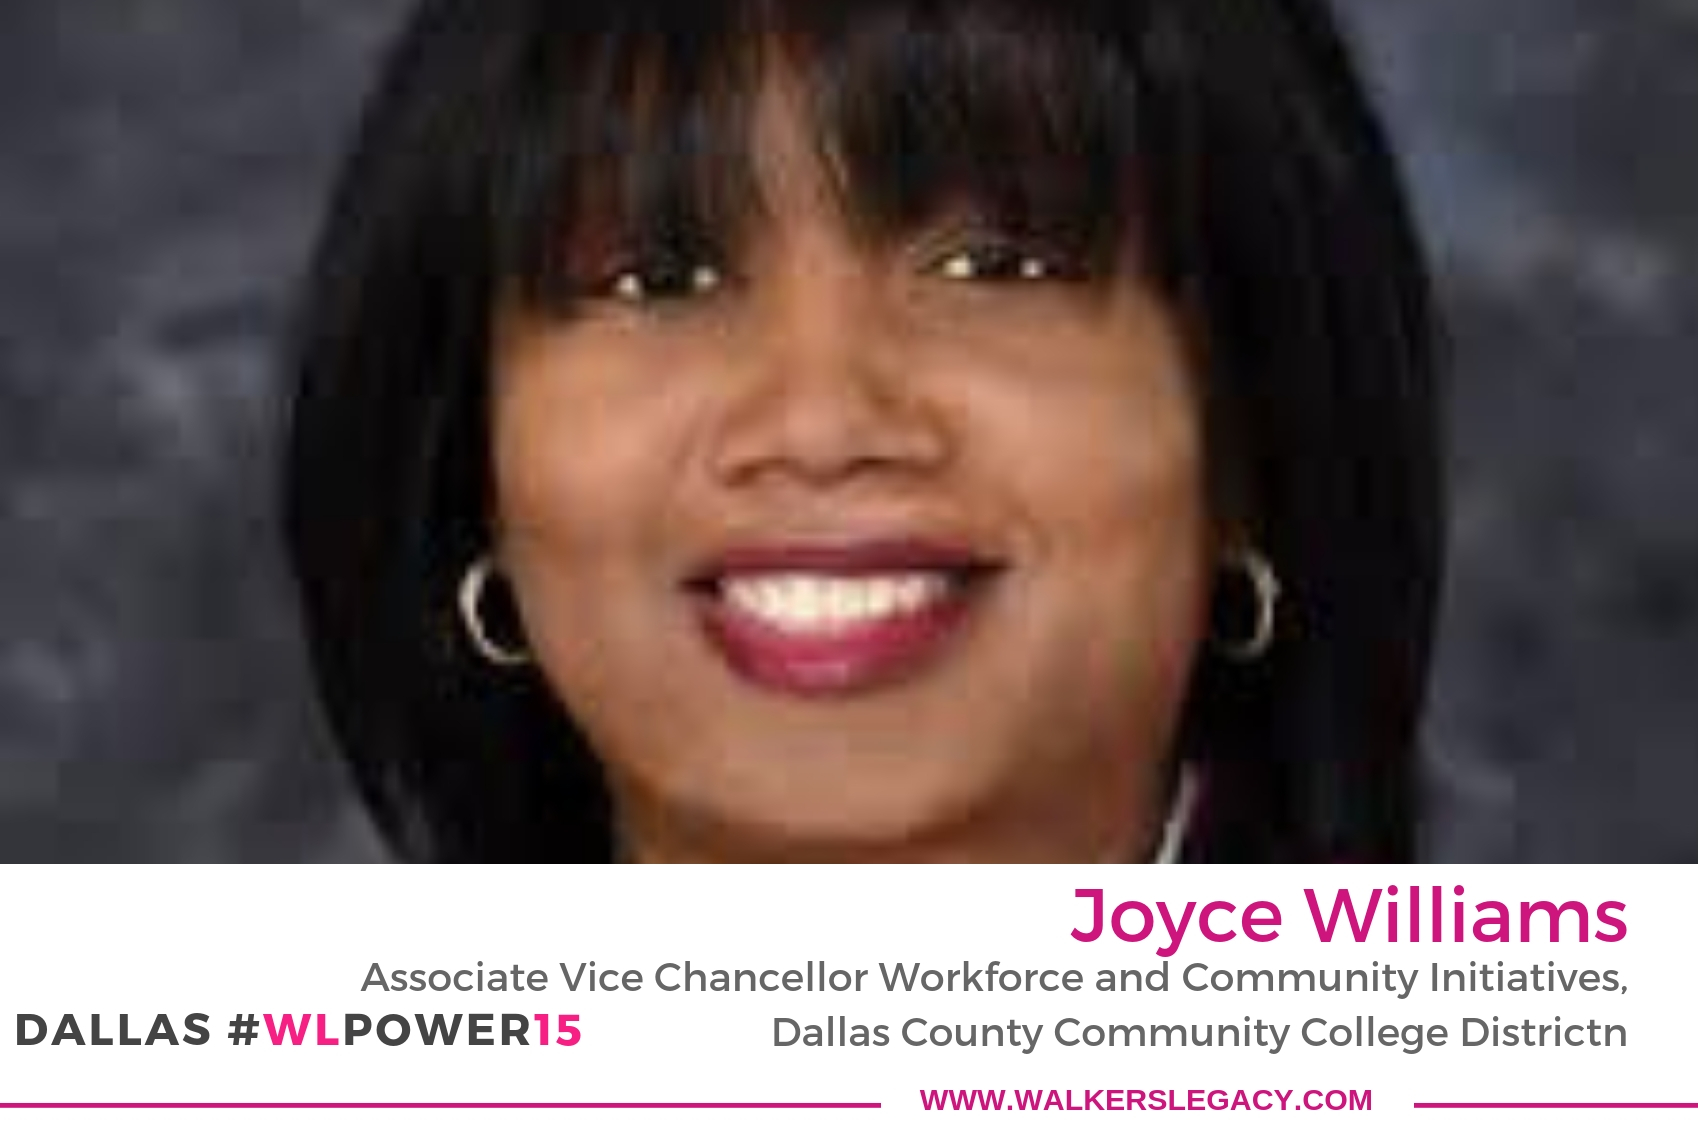 Joyce Williams